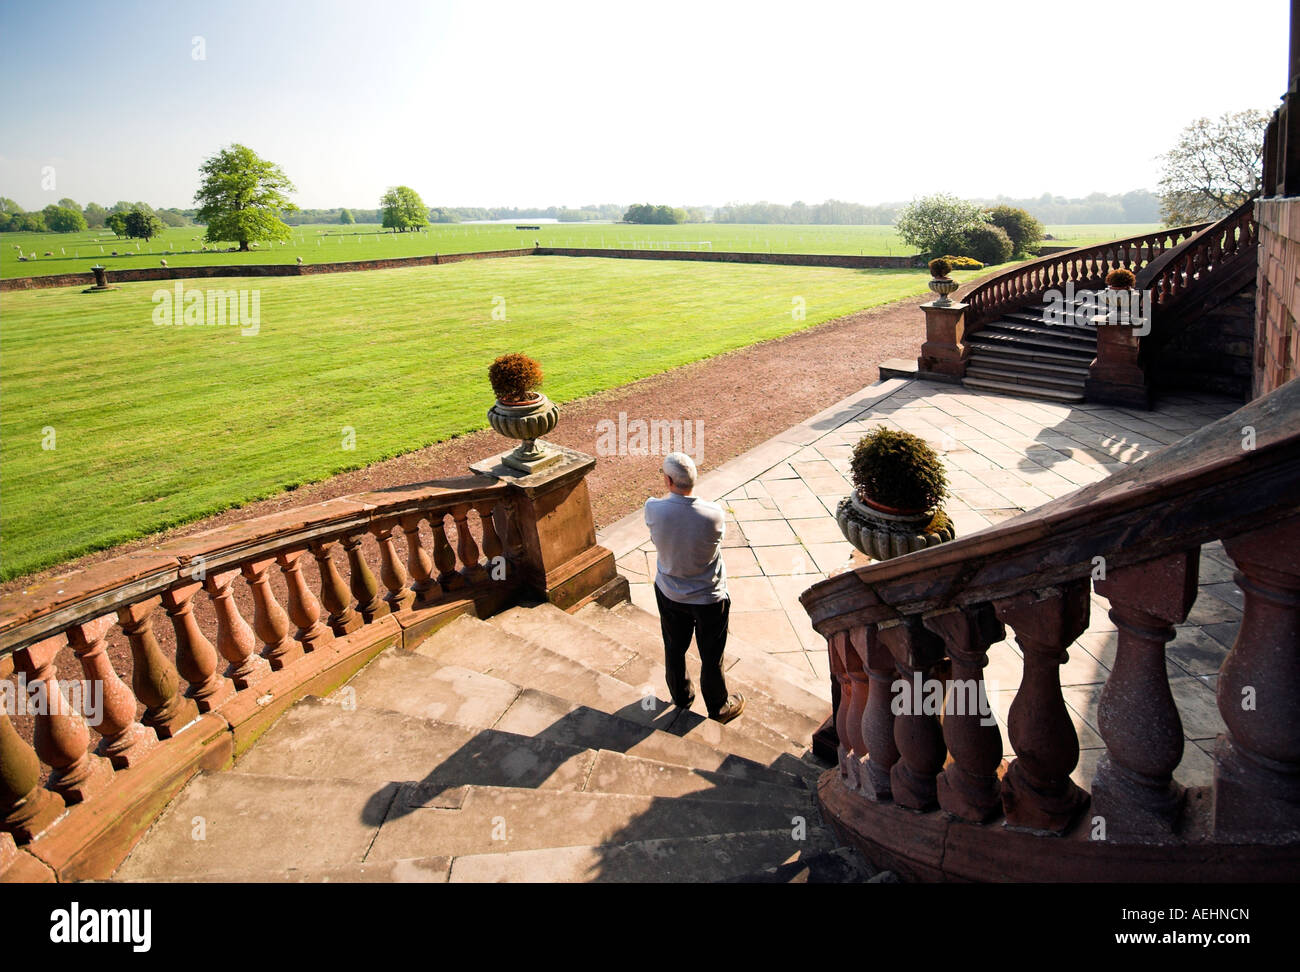 Man standing on the steps of Tabley House, Knutsford, Cheshire, UK - Stock Image